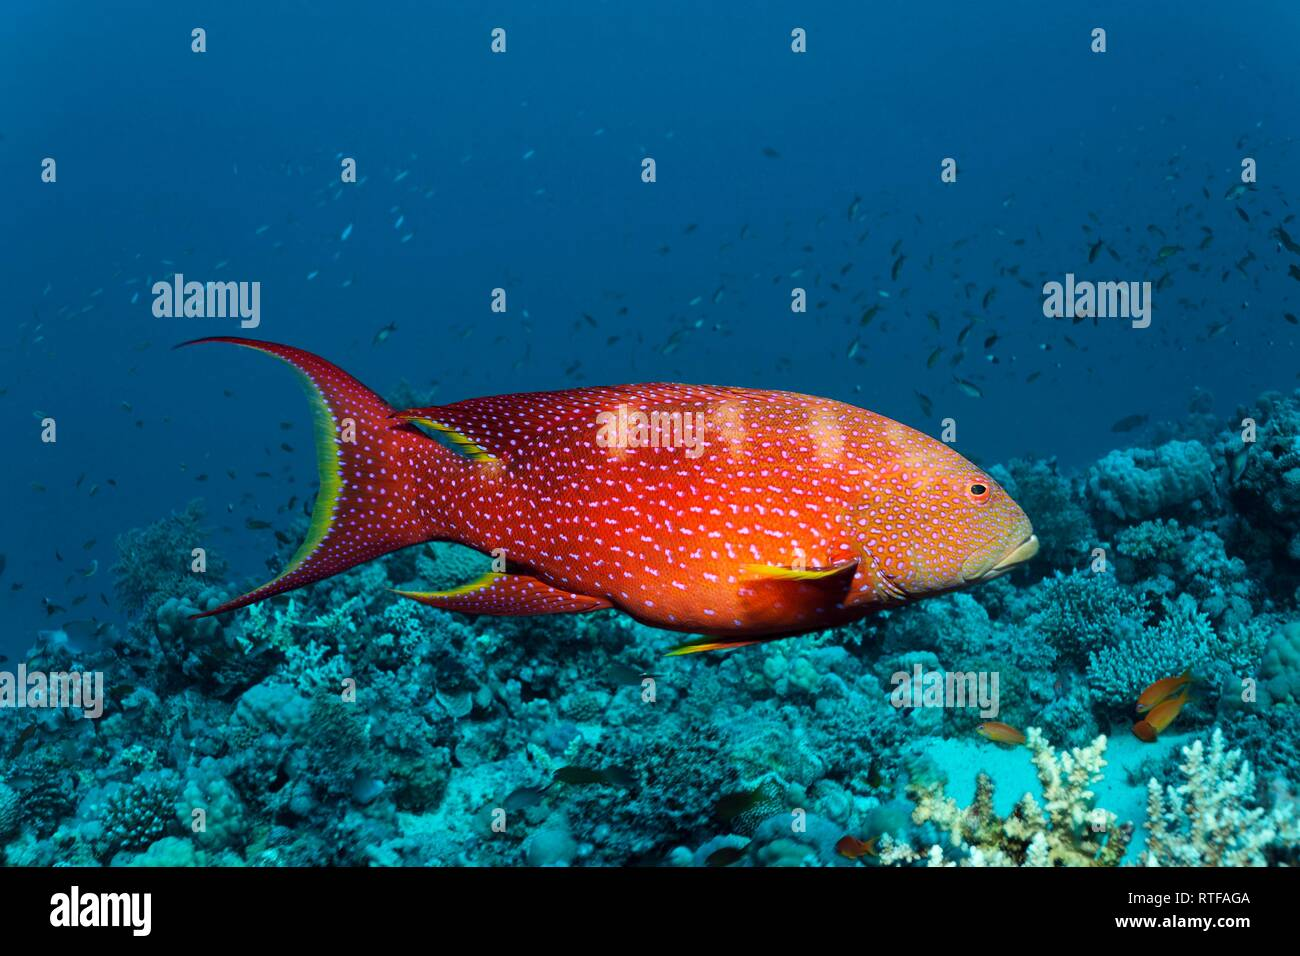 Yellow-edged lyretail (Variola louti) floats over coral reef, Red Sea, Egypt - Stock Image